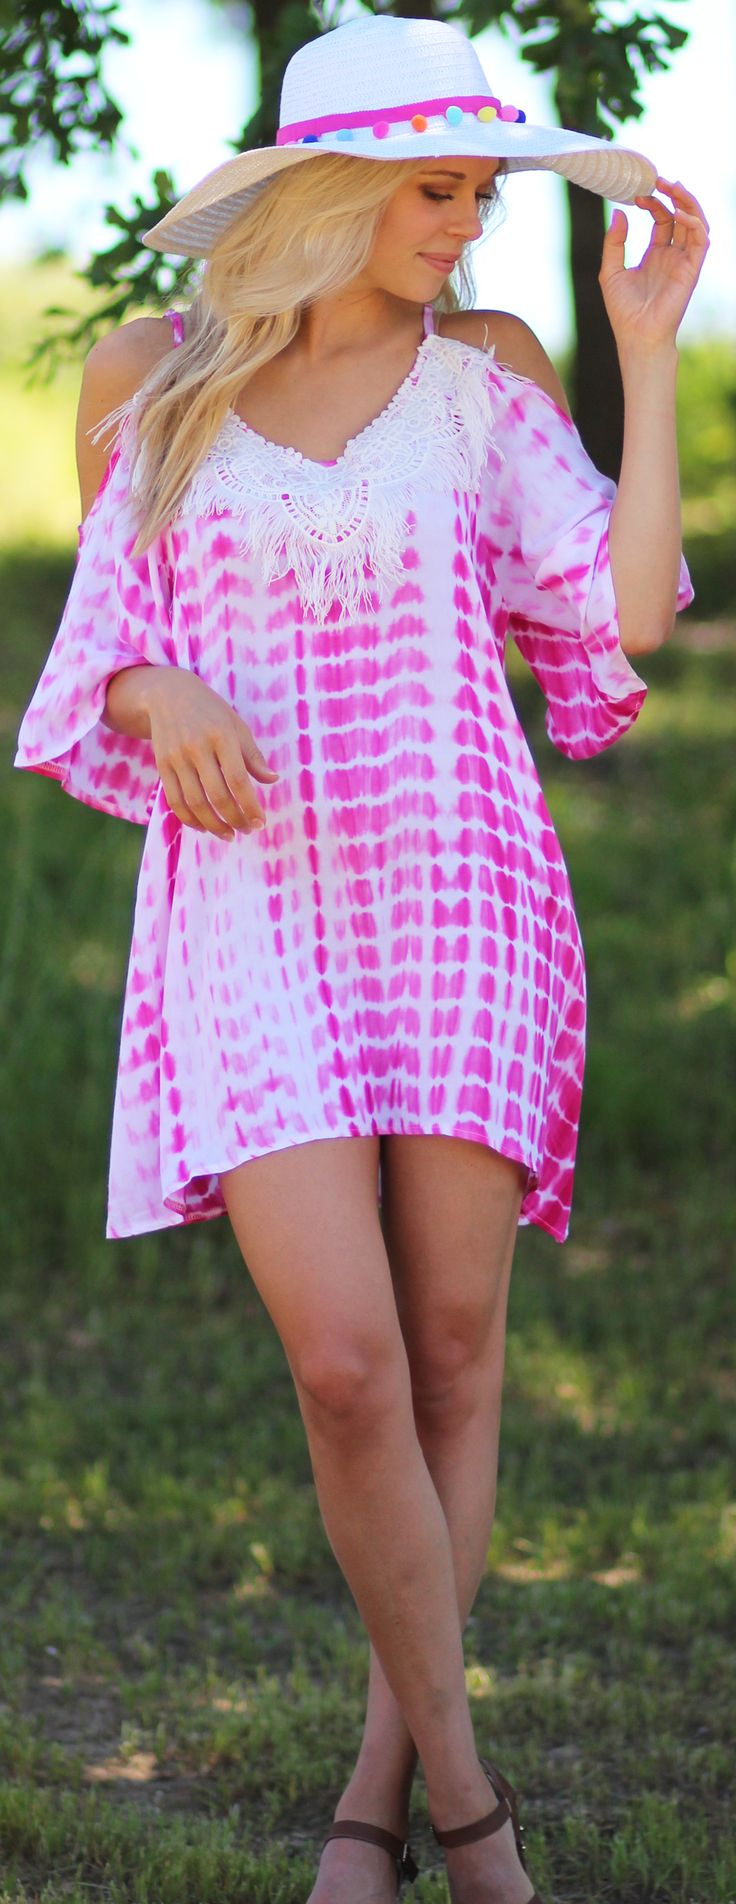 25 best Derby Days images on Pinterest | Monogram, Monograms and ...